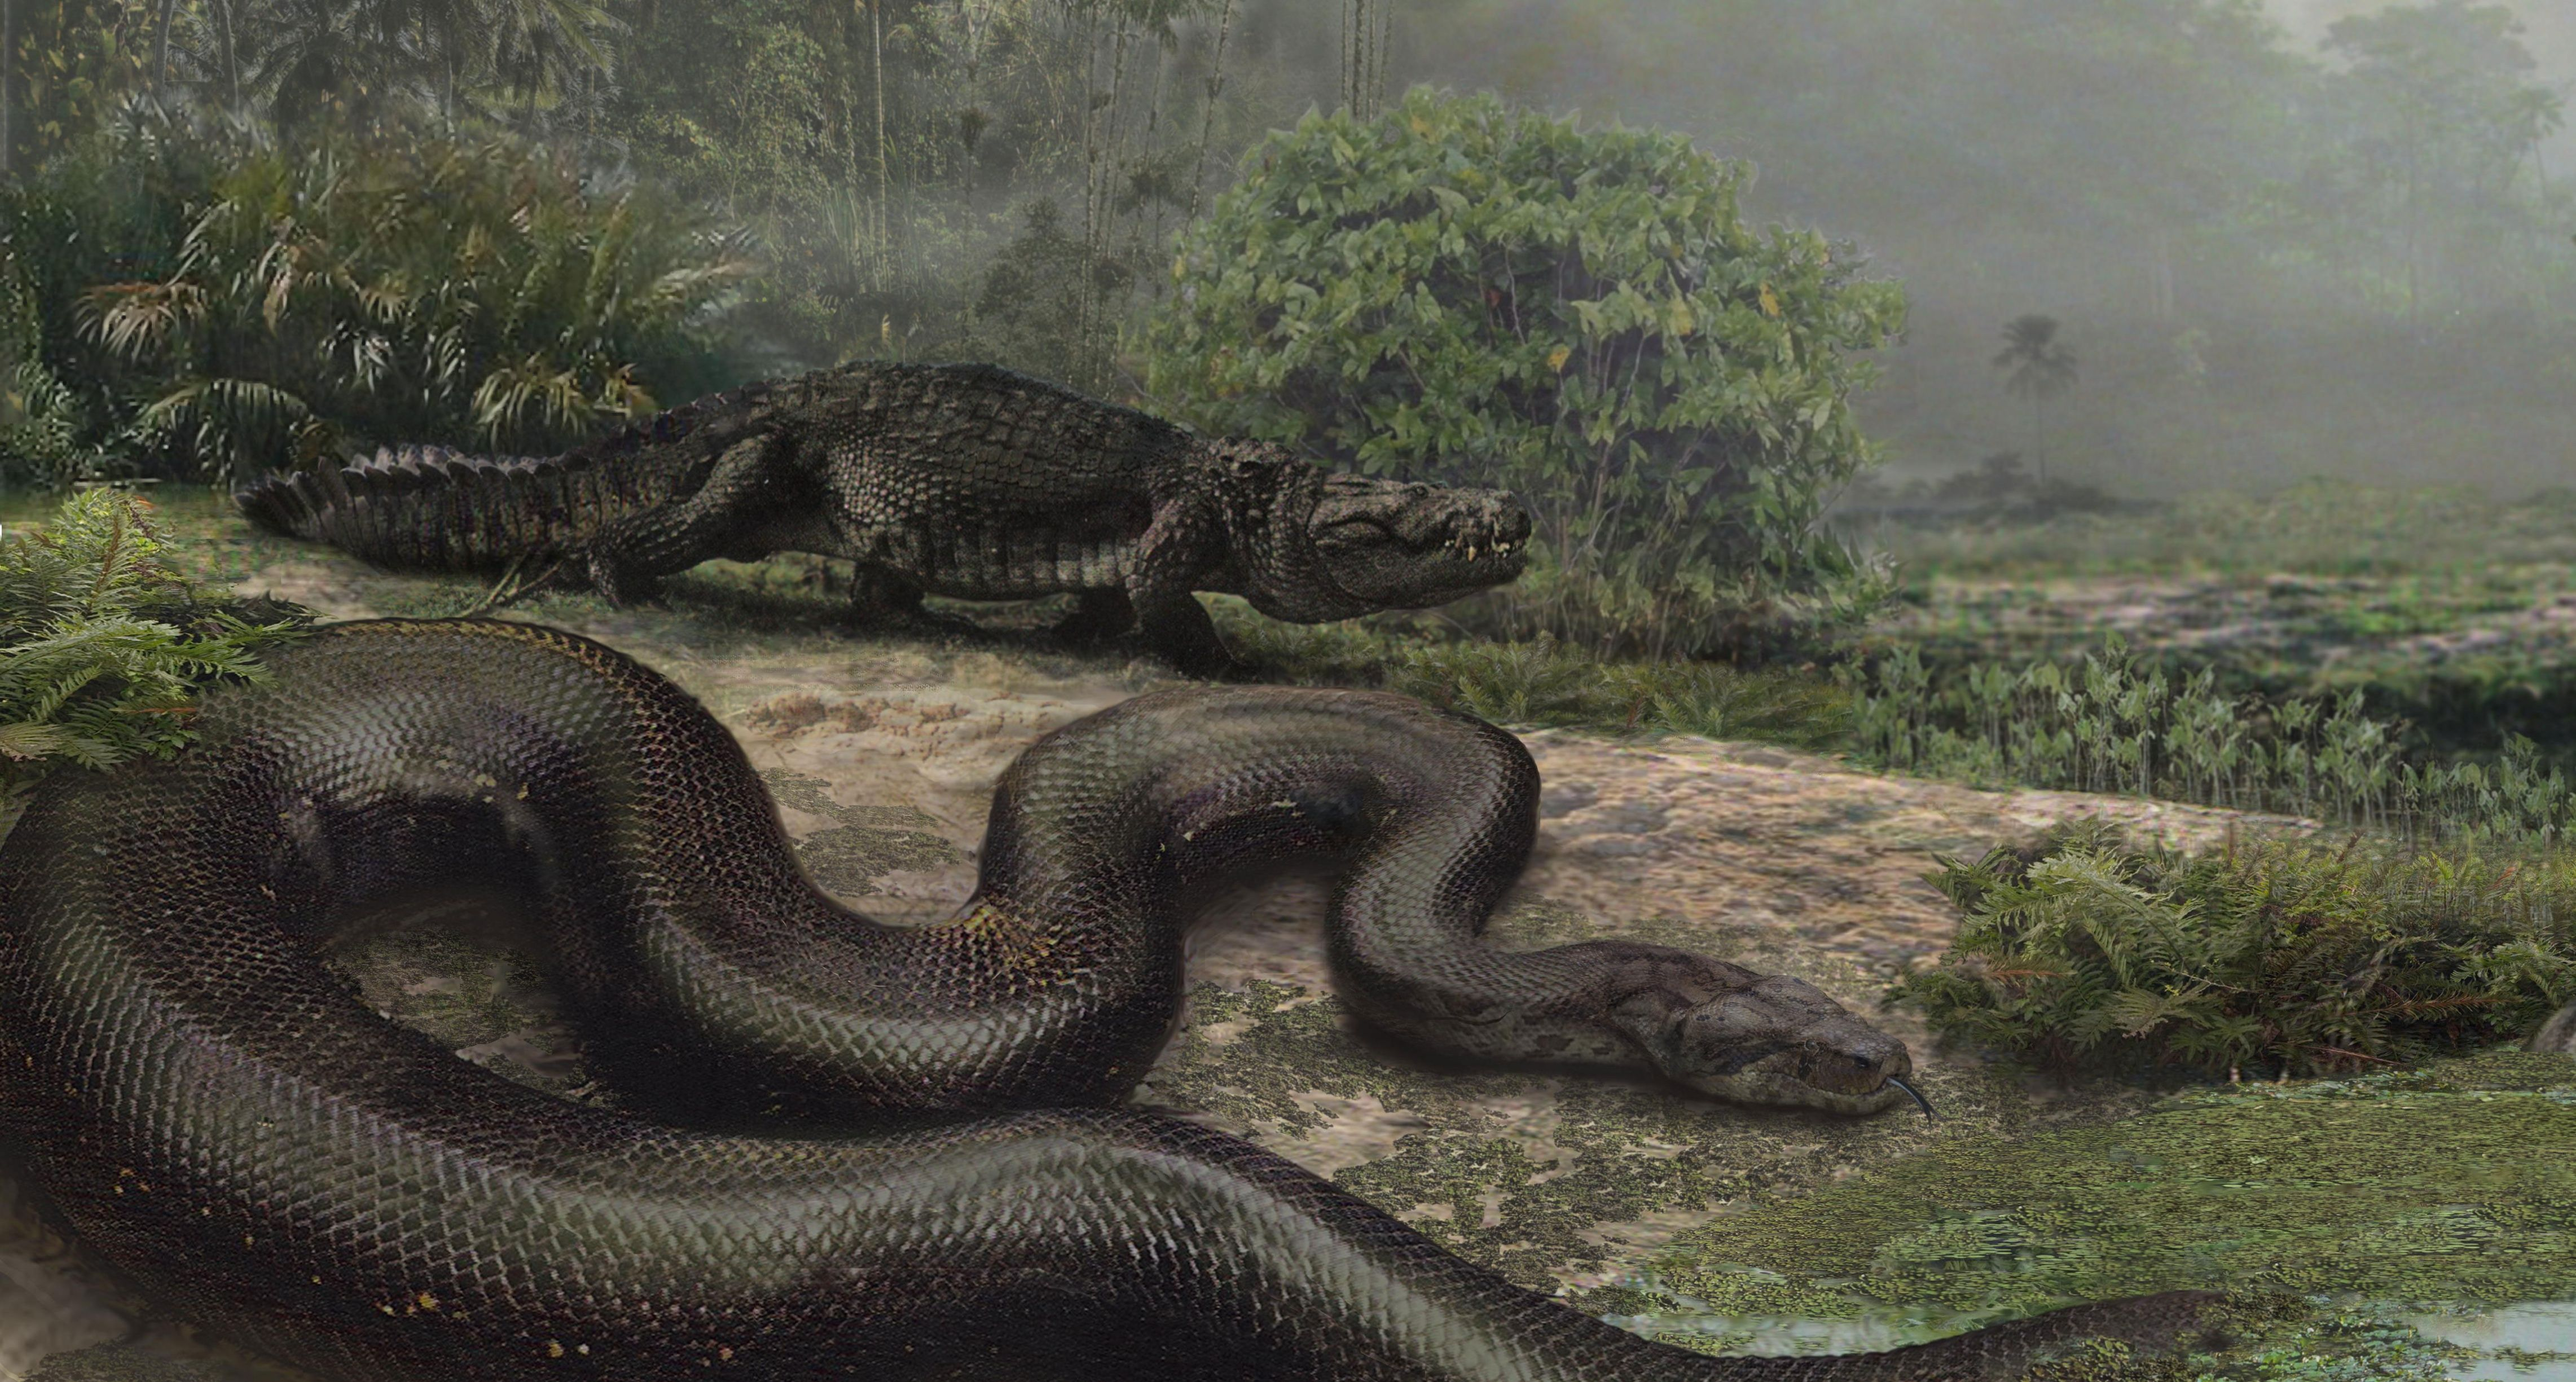 What's the largest snake that has ever existed?